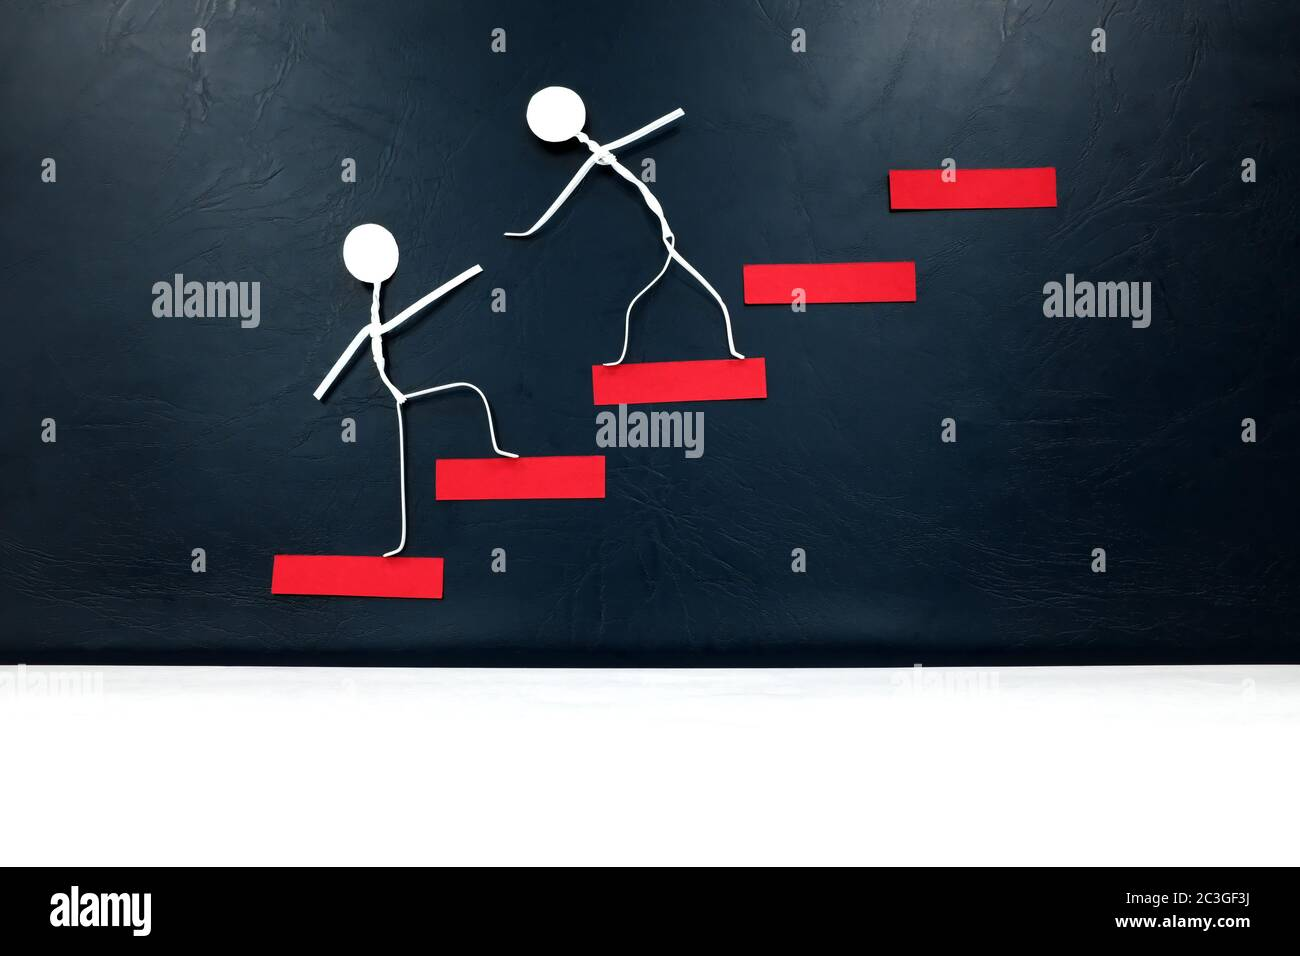 Helping hand, support and teamwork concept. Two human stick figures climbing a red ladder. Stock Photo